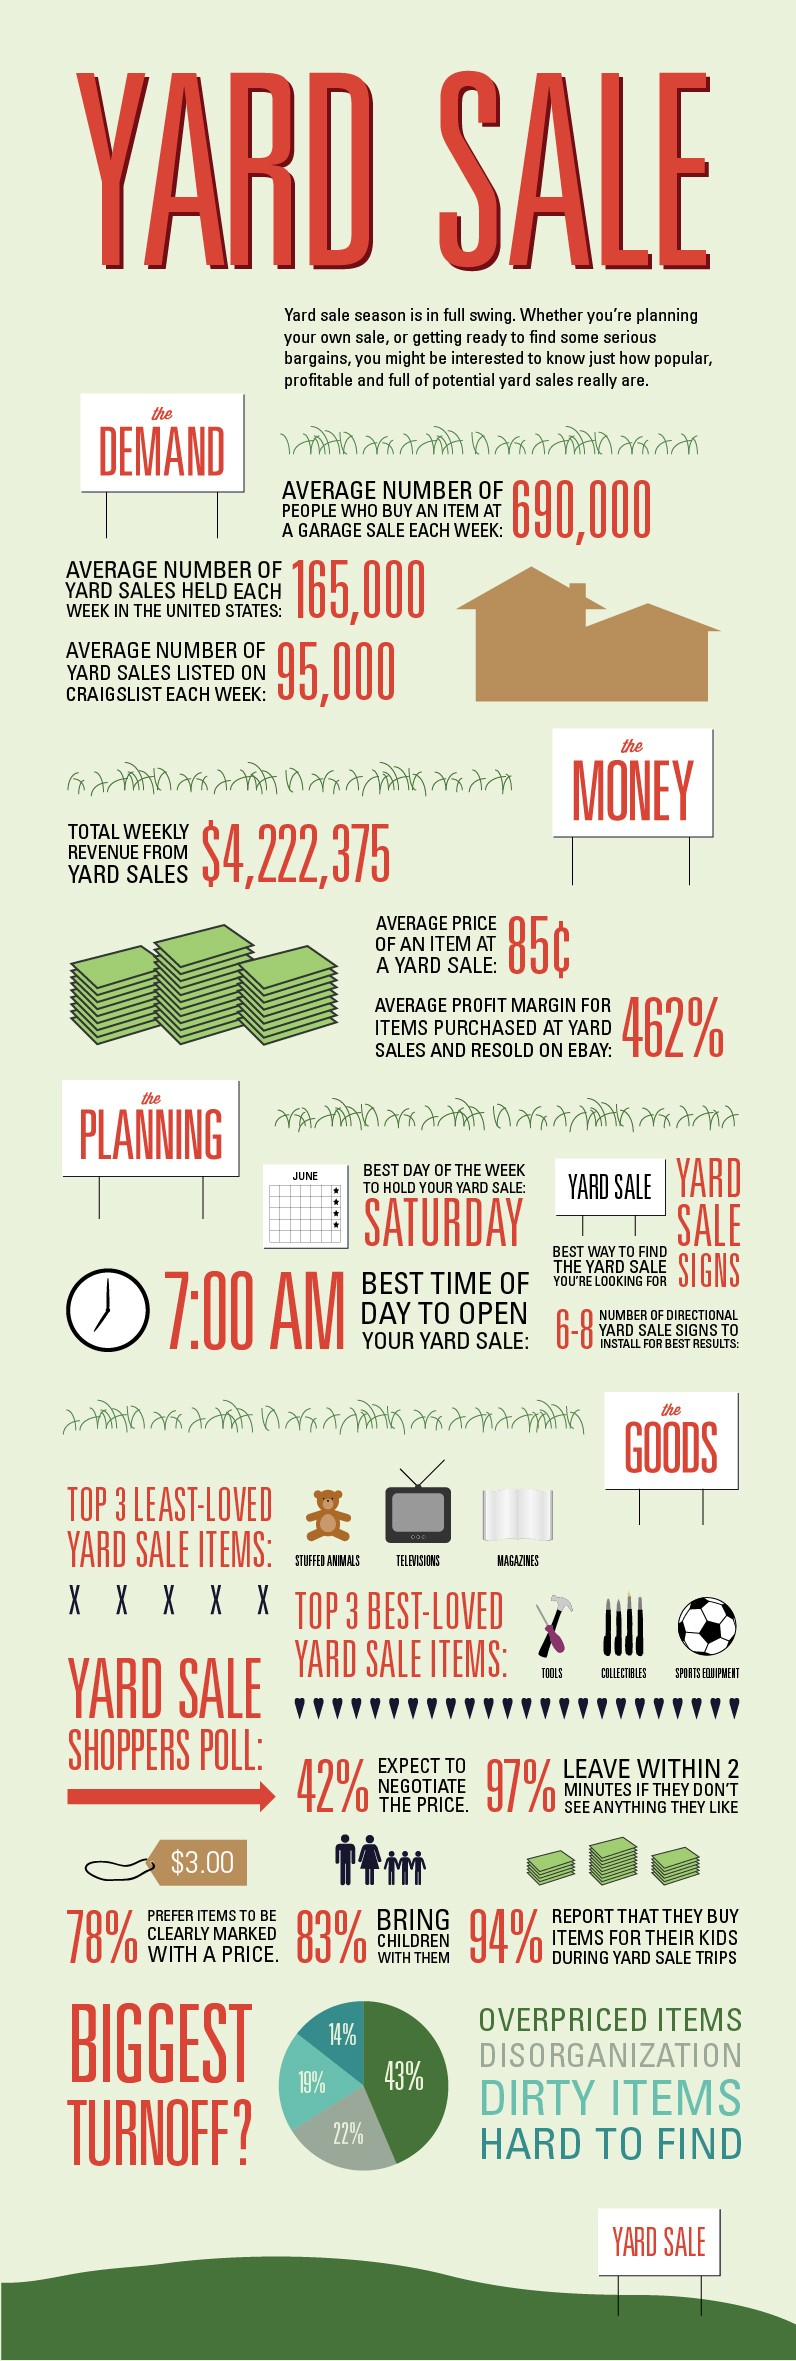 Yard Sale Stats and Facts